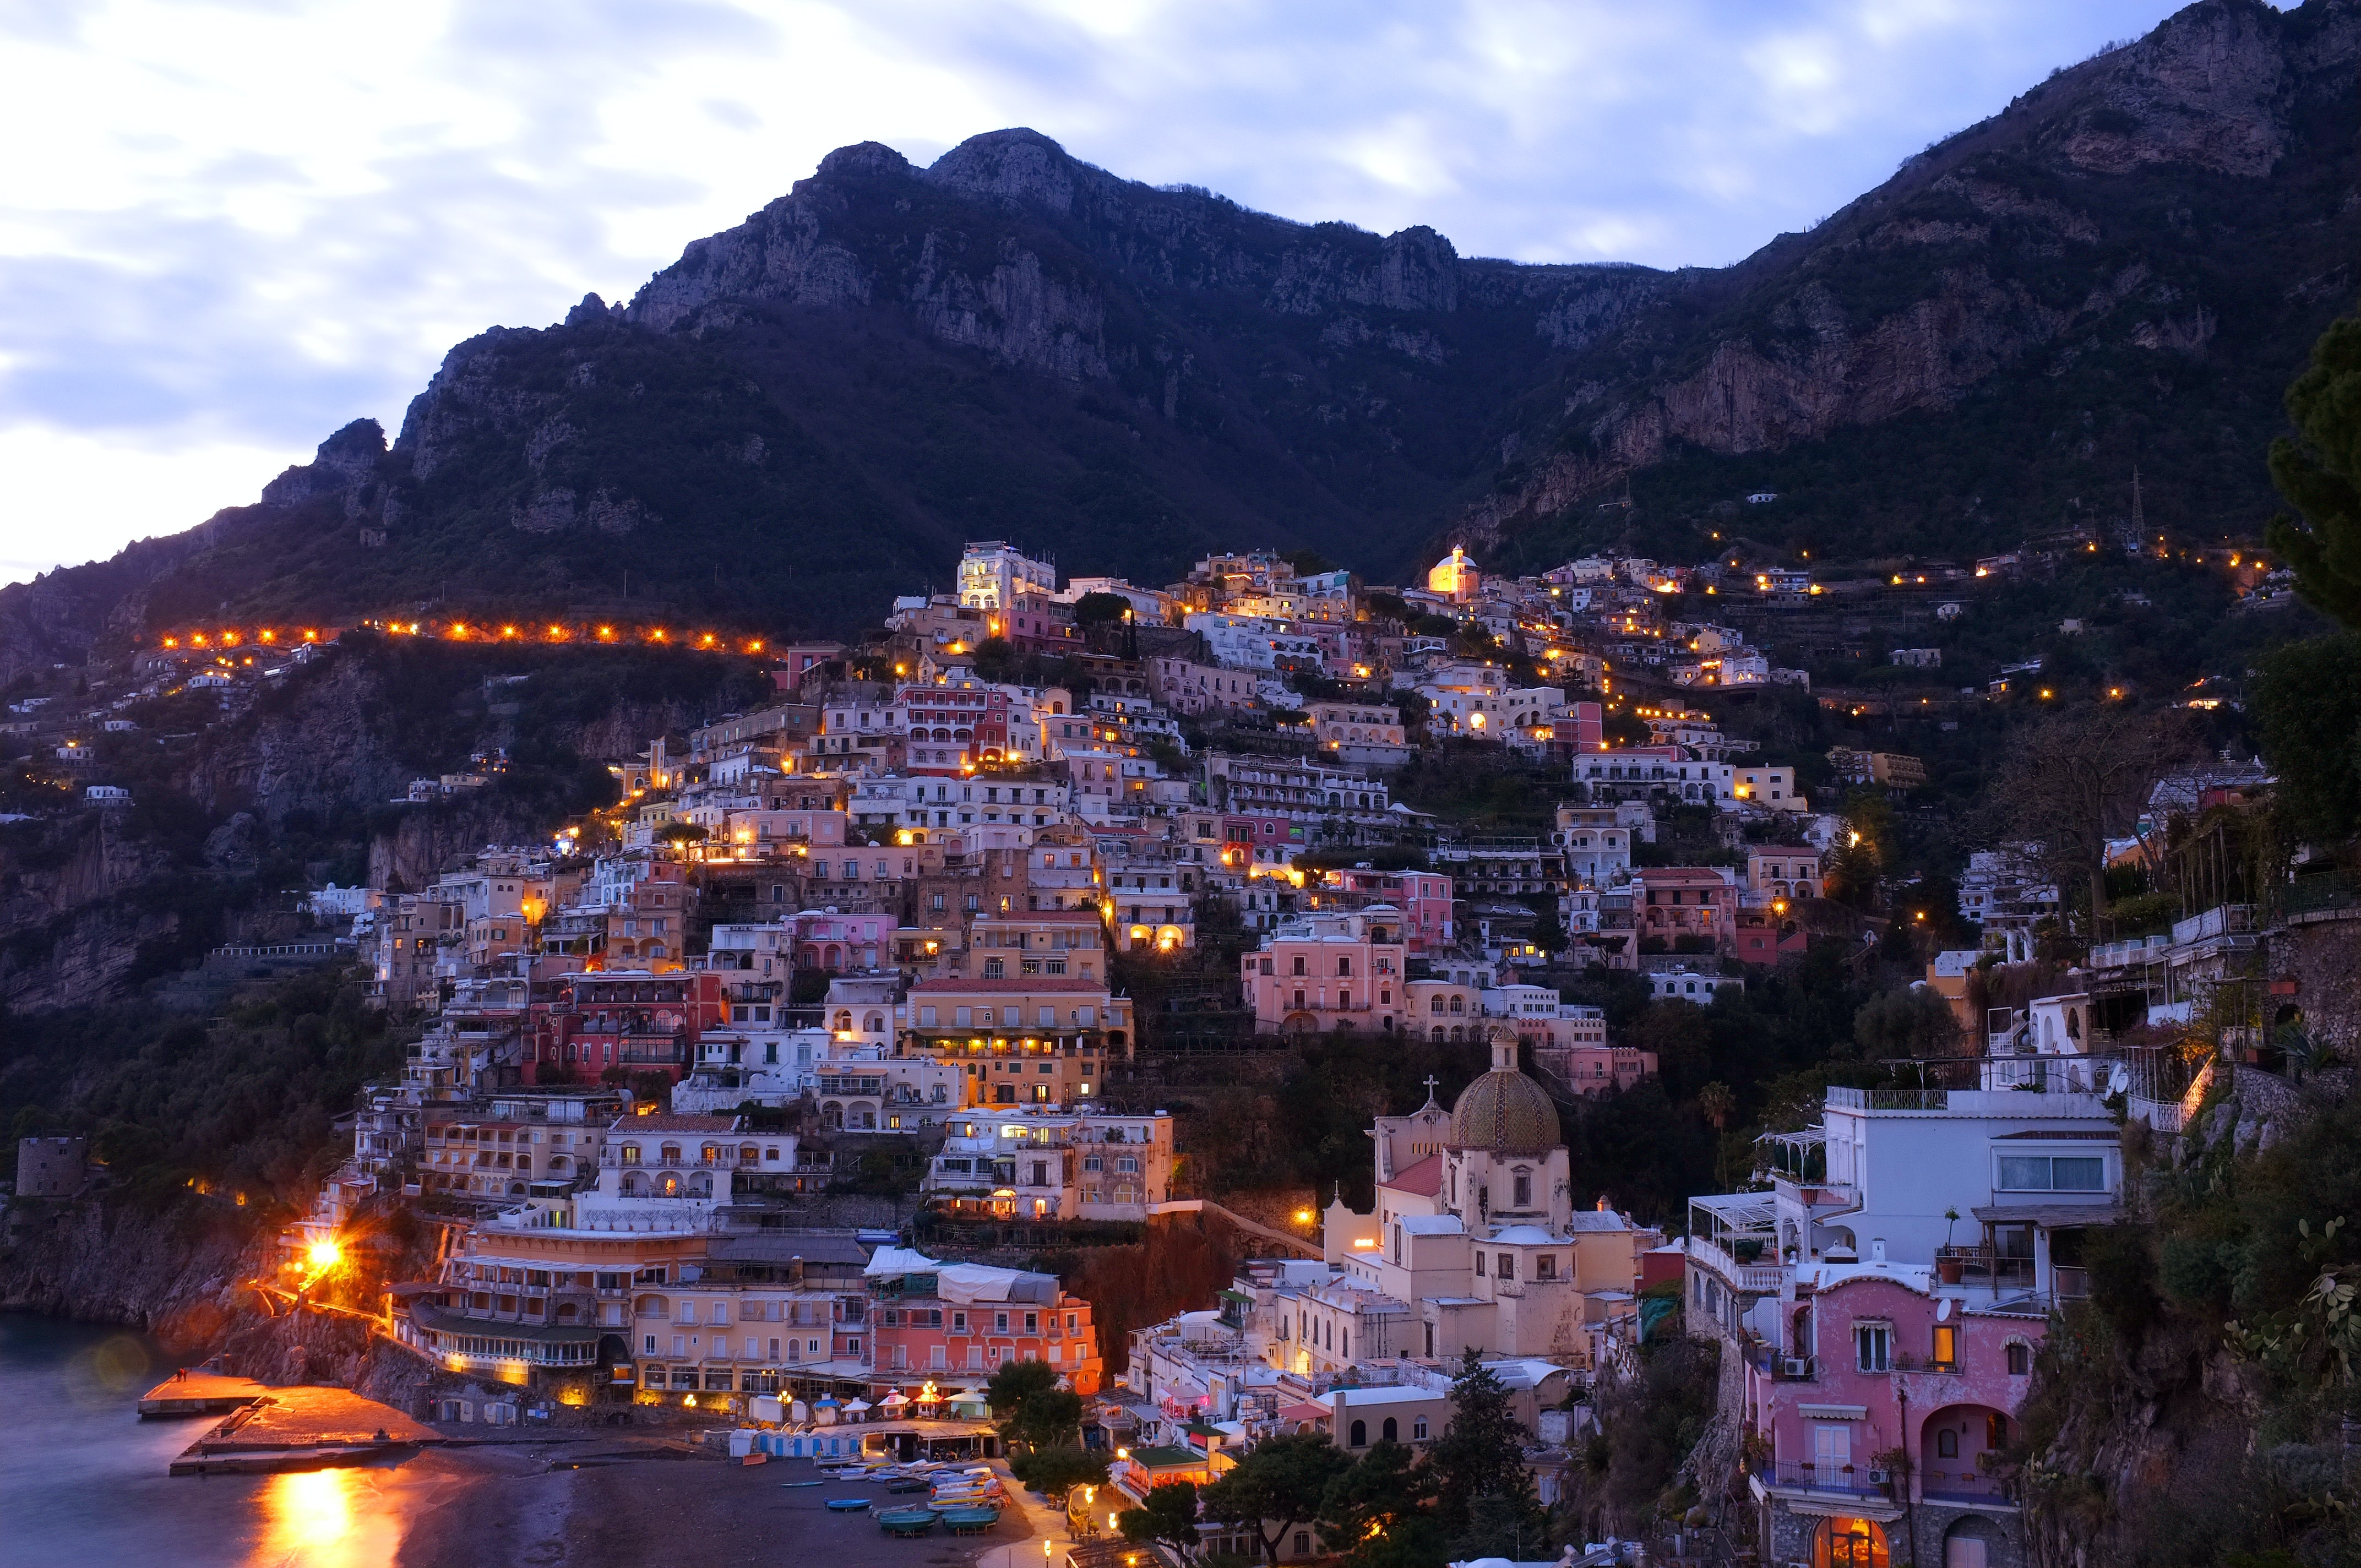 The small town of Positano on the side of a mountain in the evening